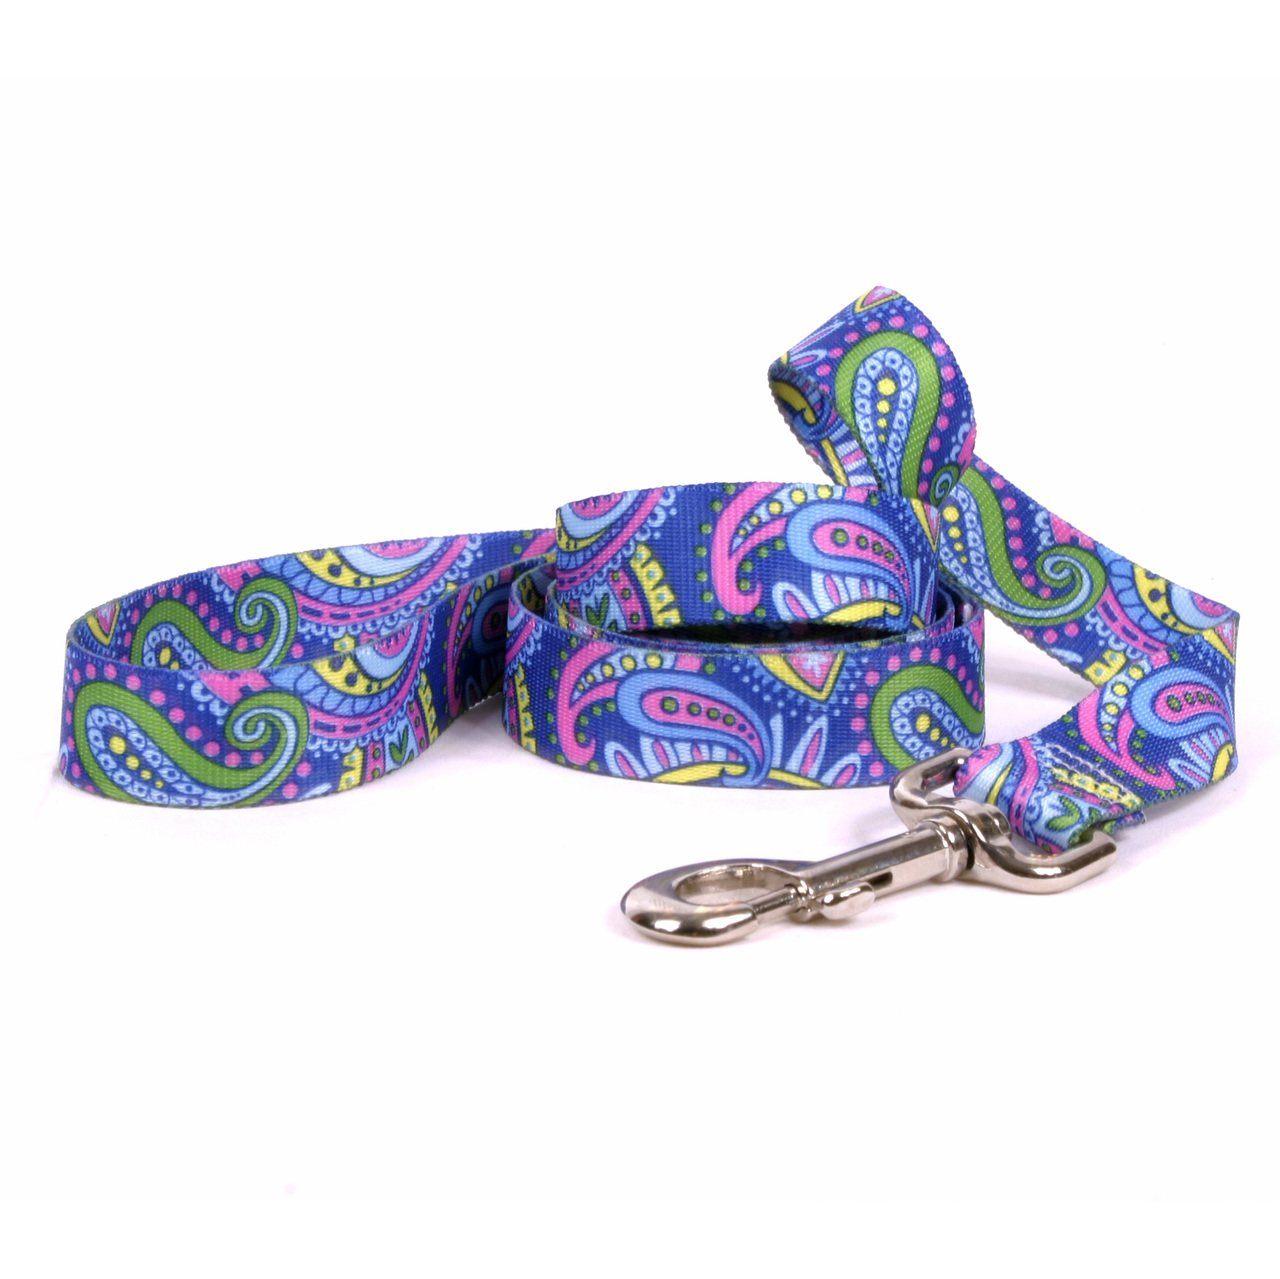 Yellow Dog Design Paisley Power Dog Leash, Large-1'' Wide and 5' (60'') Long